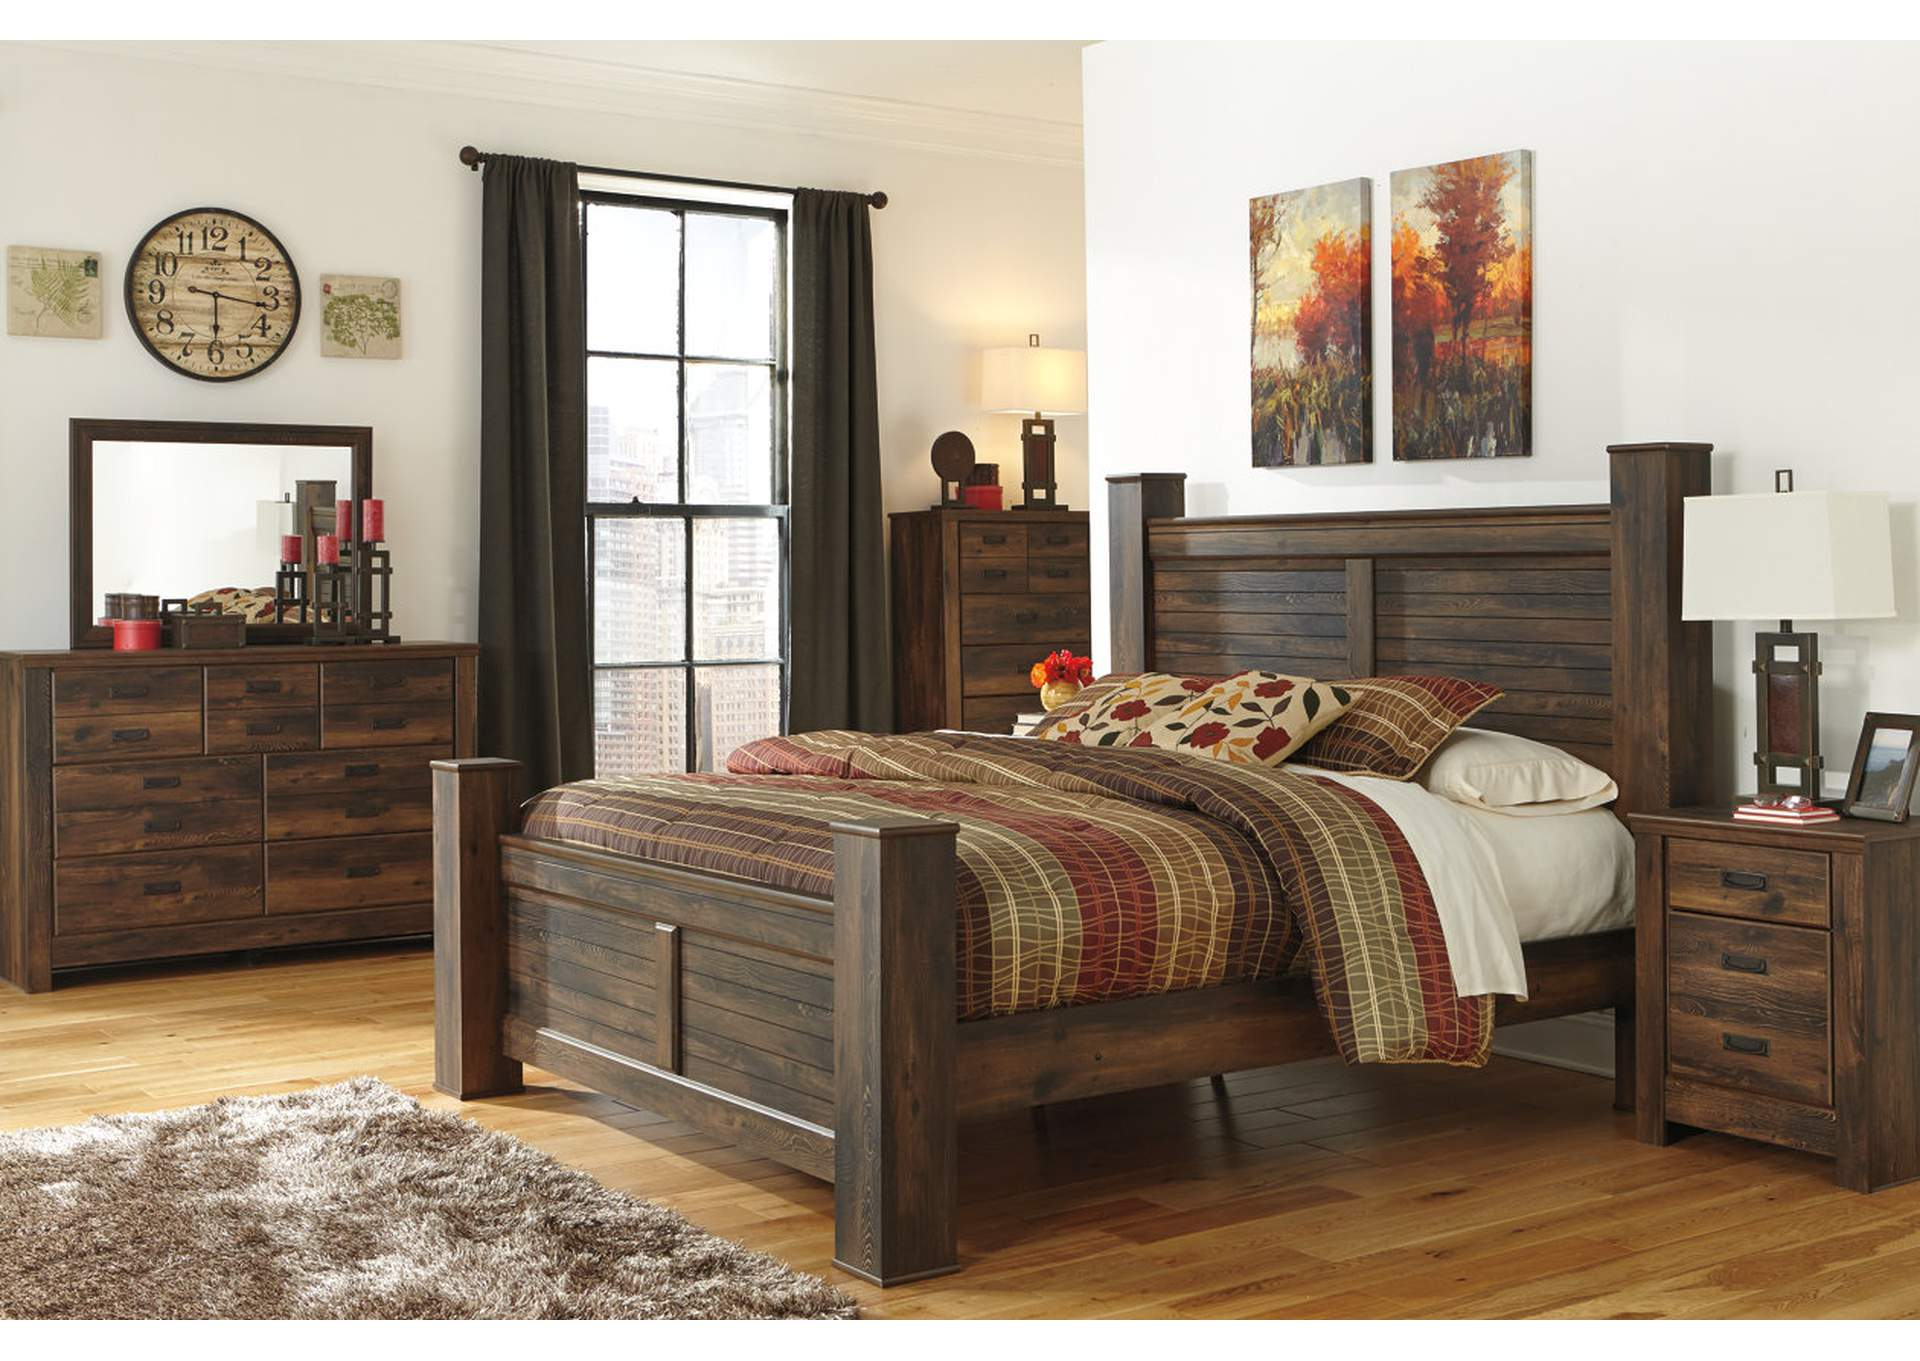 Quinden King Poster Bed w/Dresser & Mirror,Signature Design By Ashley